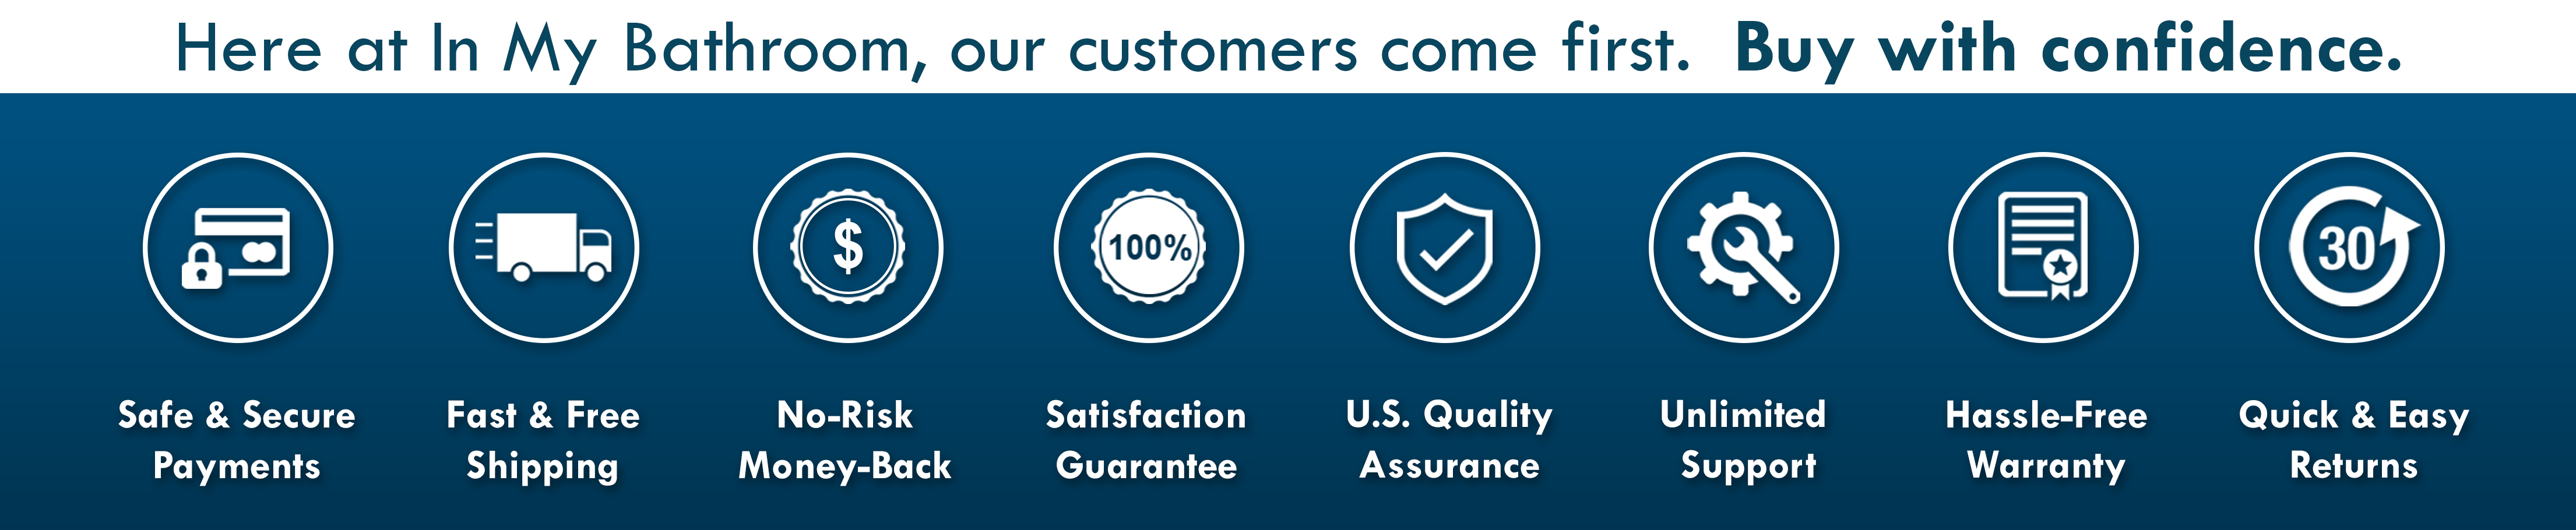 In My Bathroom - IMB - Customers Come First - Free Shipping - Safe Payments - Warranty - Money-Back - Satisfaction Guaranteed - U.S. - USA - Support - QA - Easy Returns - Newsletter - Buy With Confidence